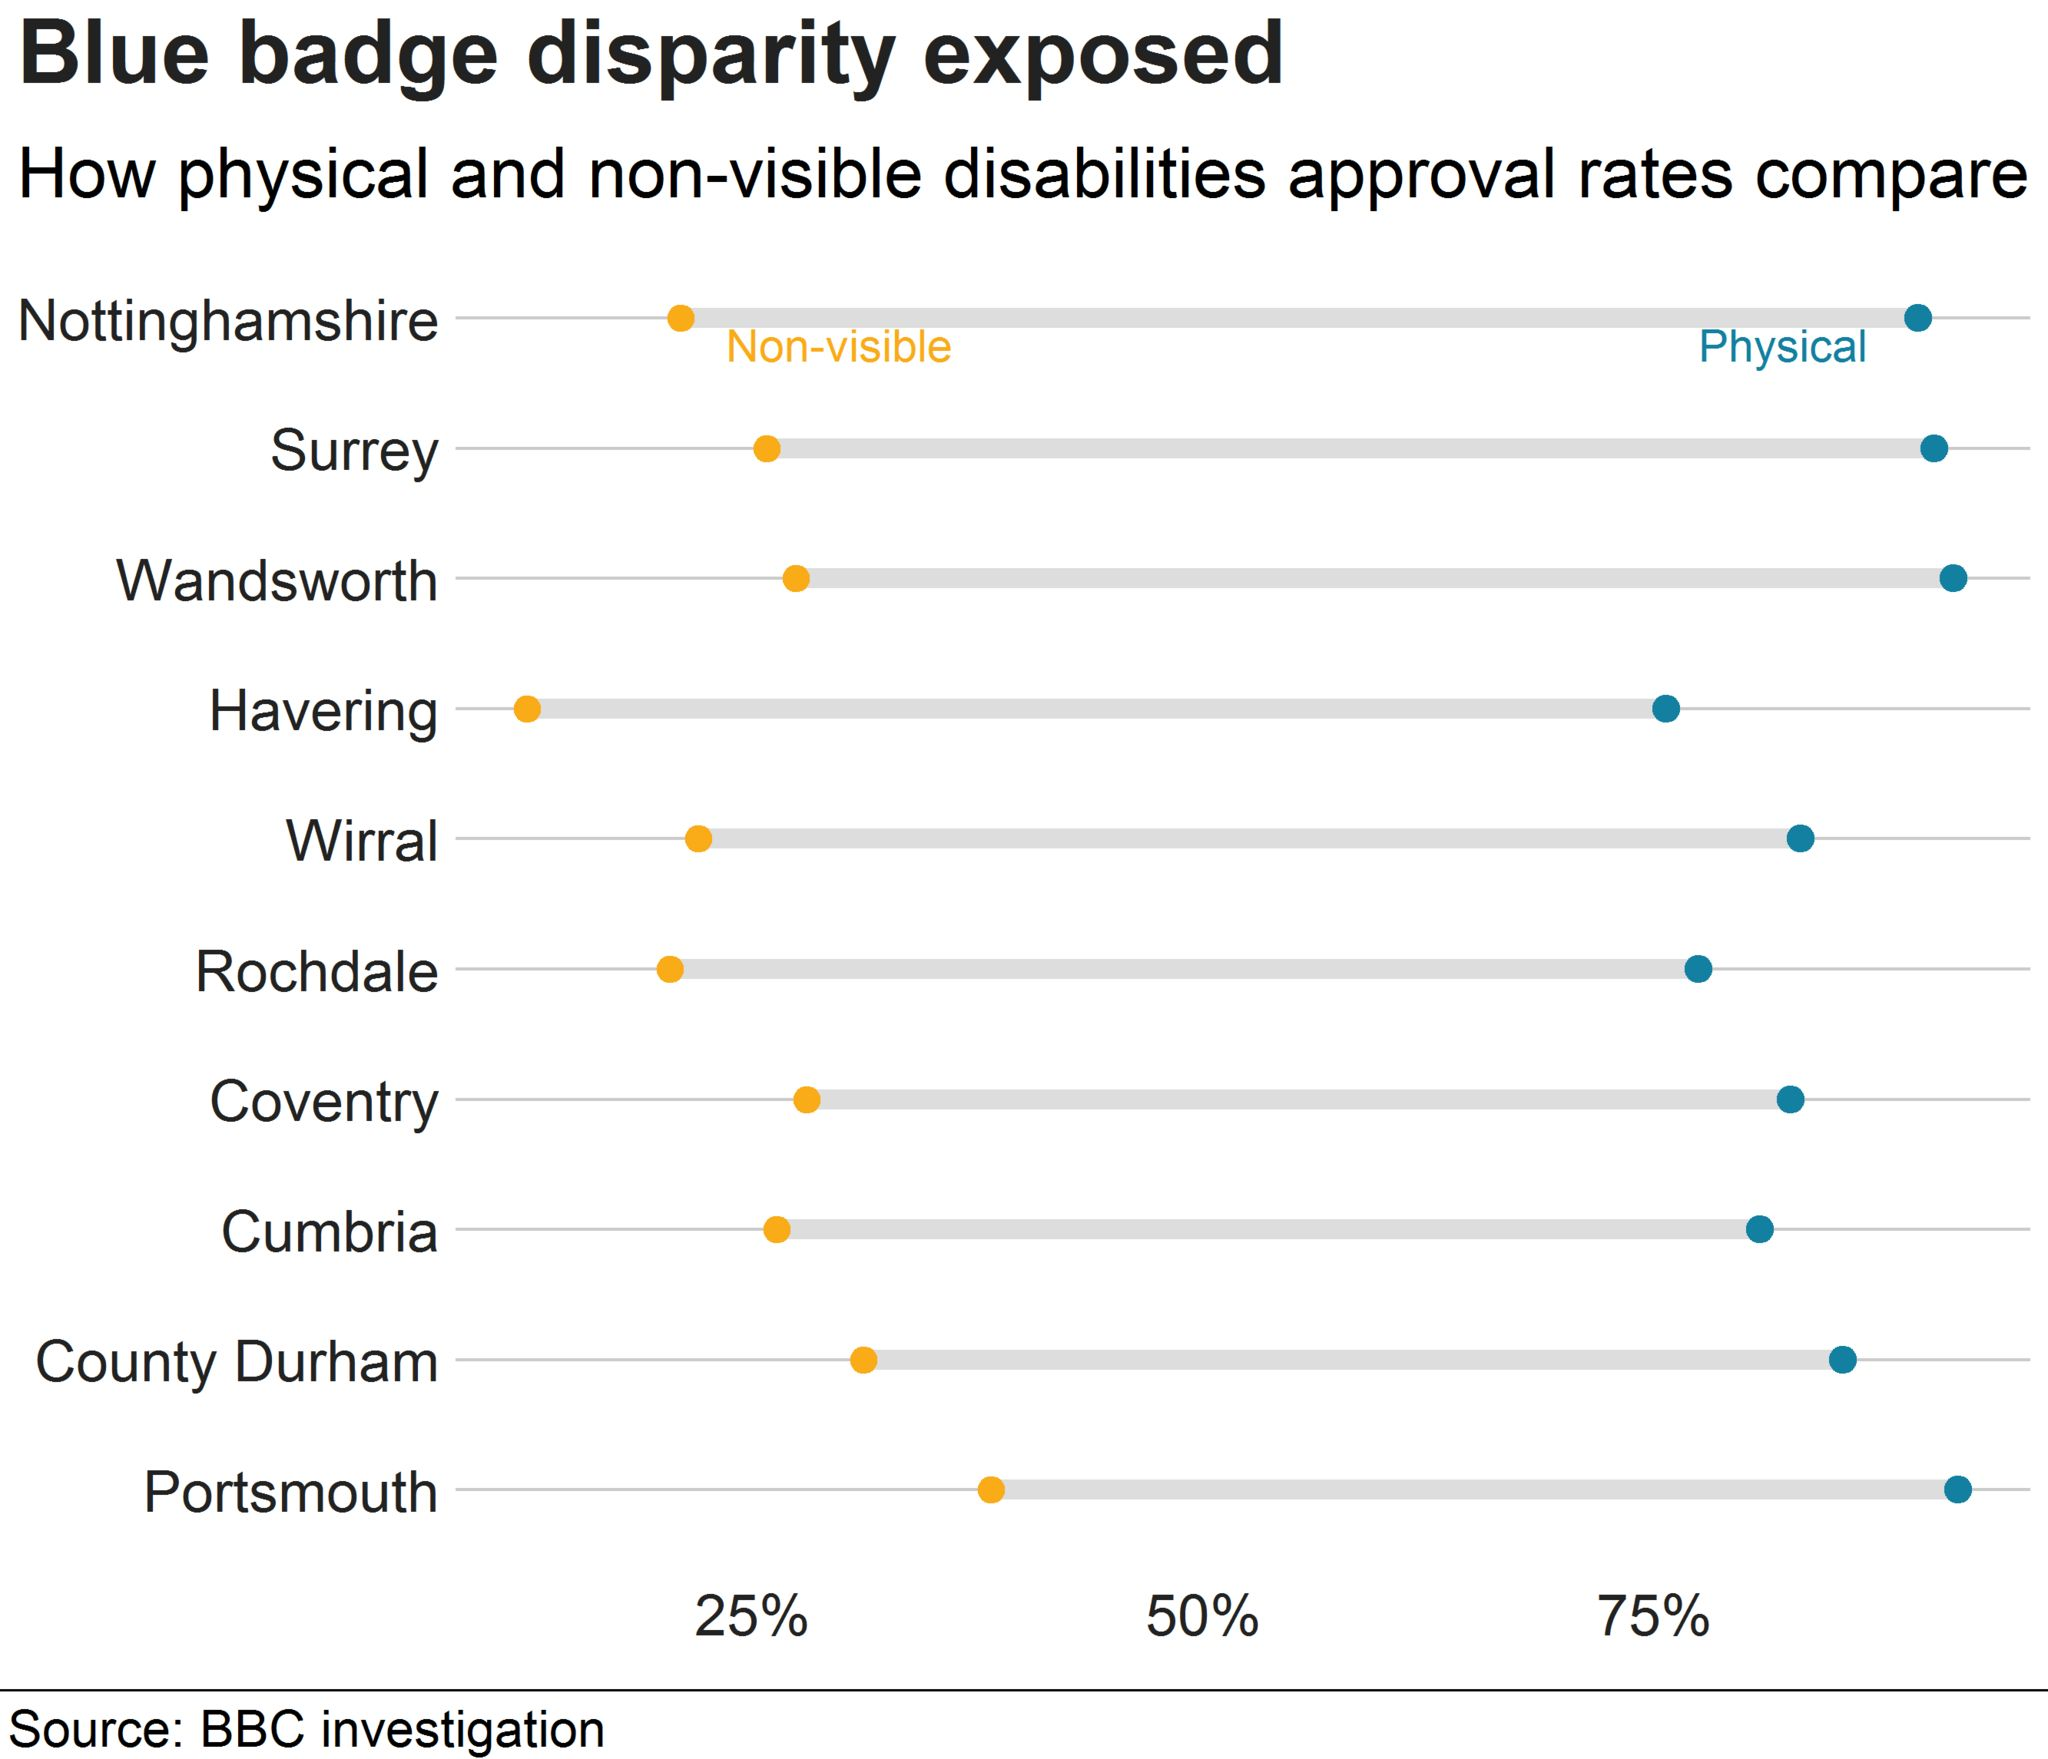 Dumbbell chart showing disparity for ten local authorities